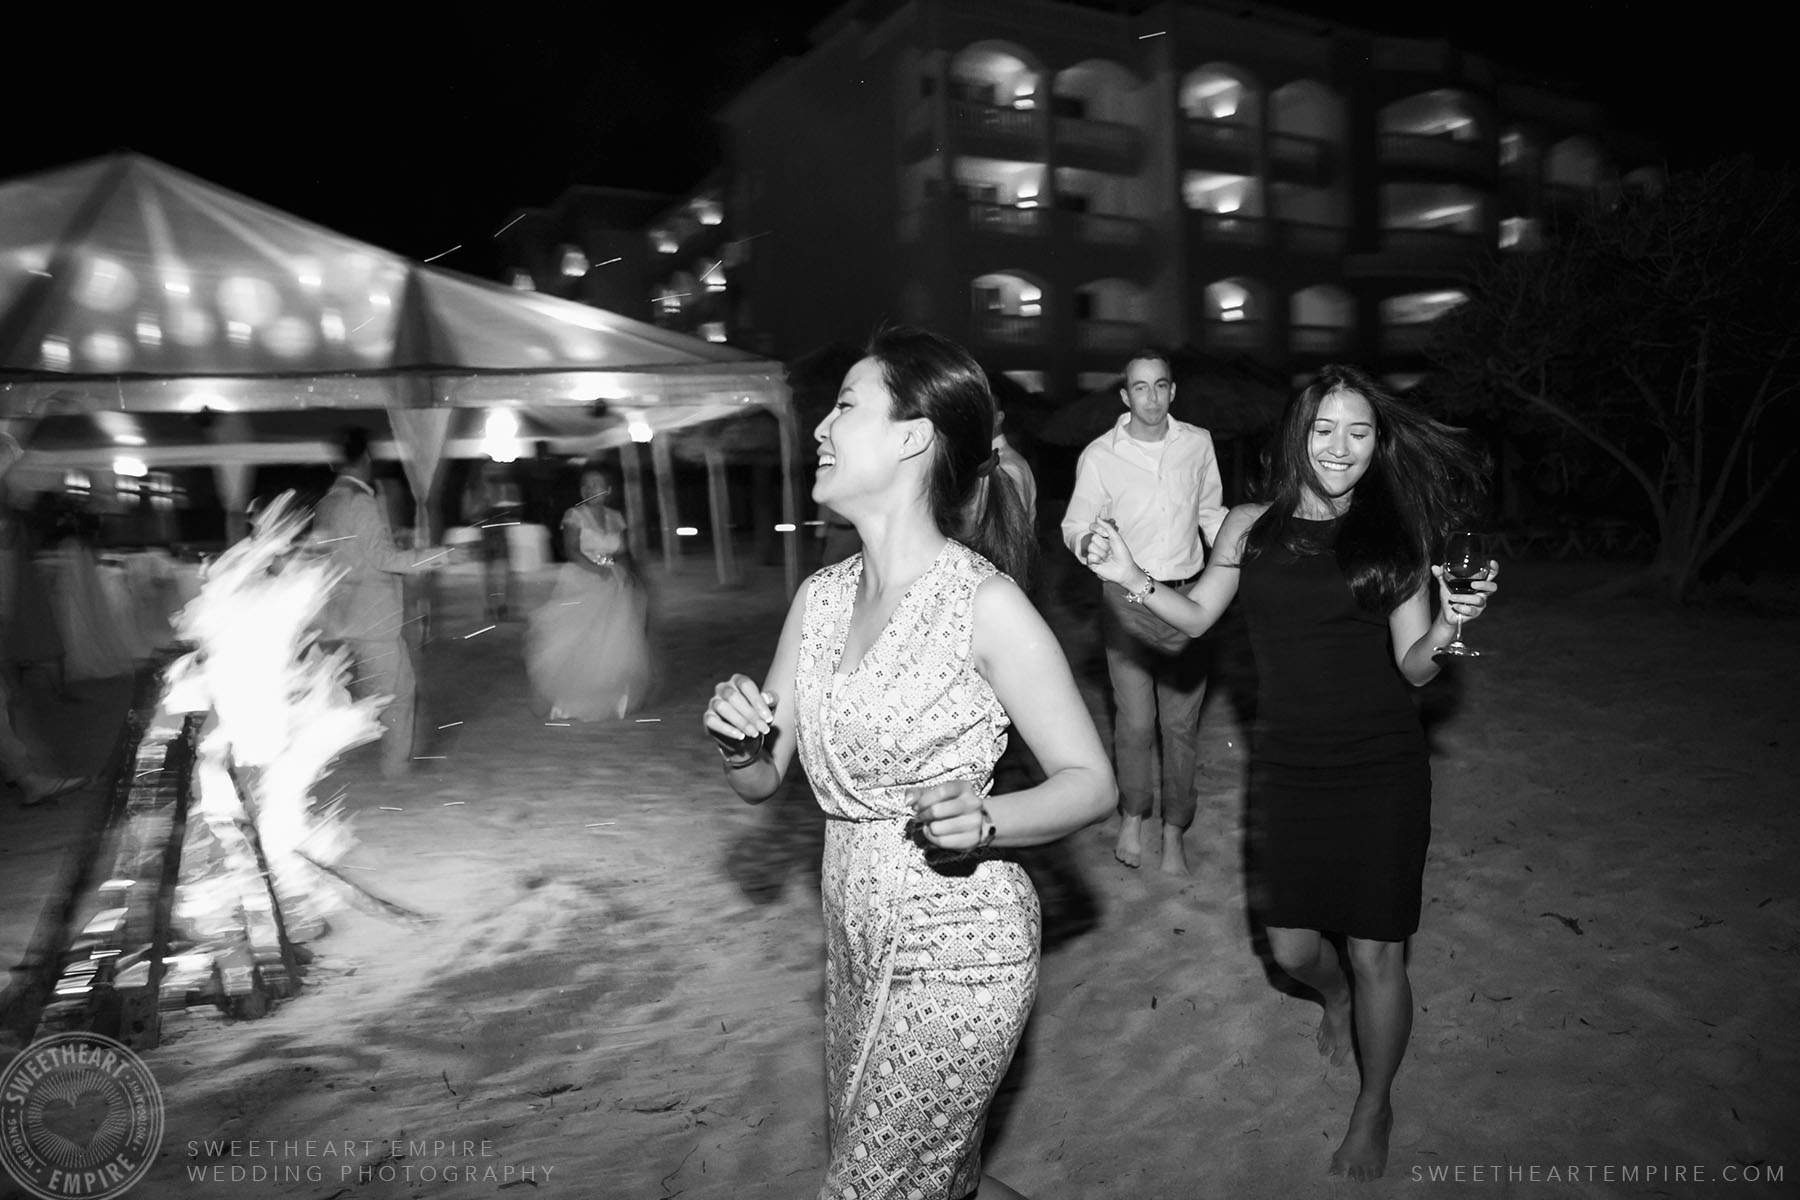 Guests dancing during wedding reception at Iberostar Grand Hotel Rose Hall, in Montego Bay, Jamaica